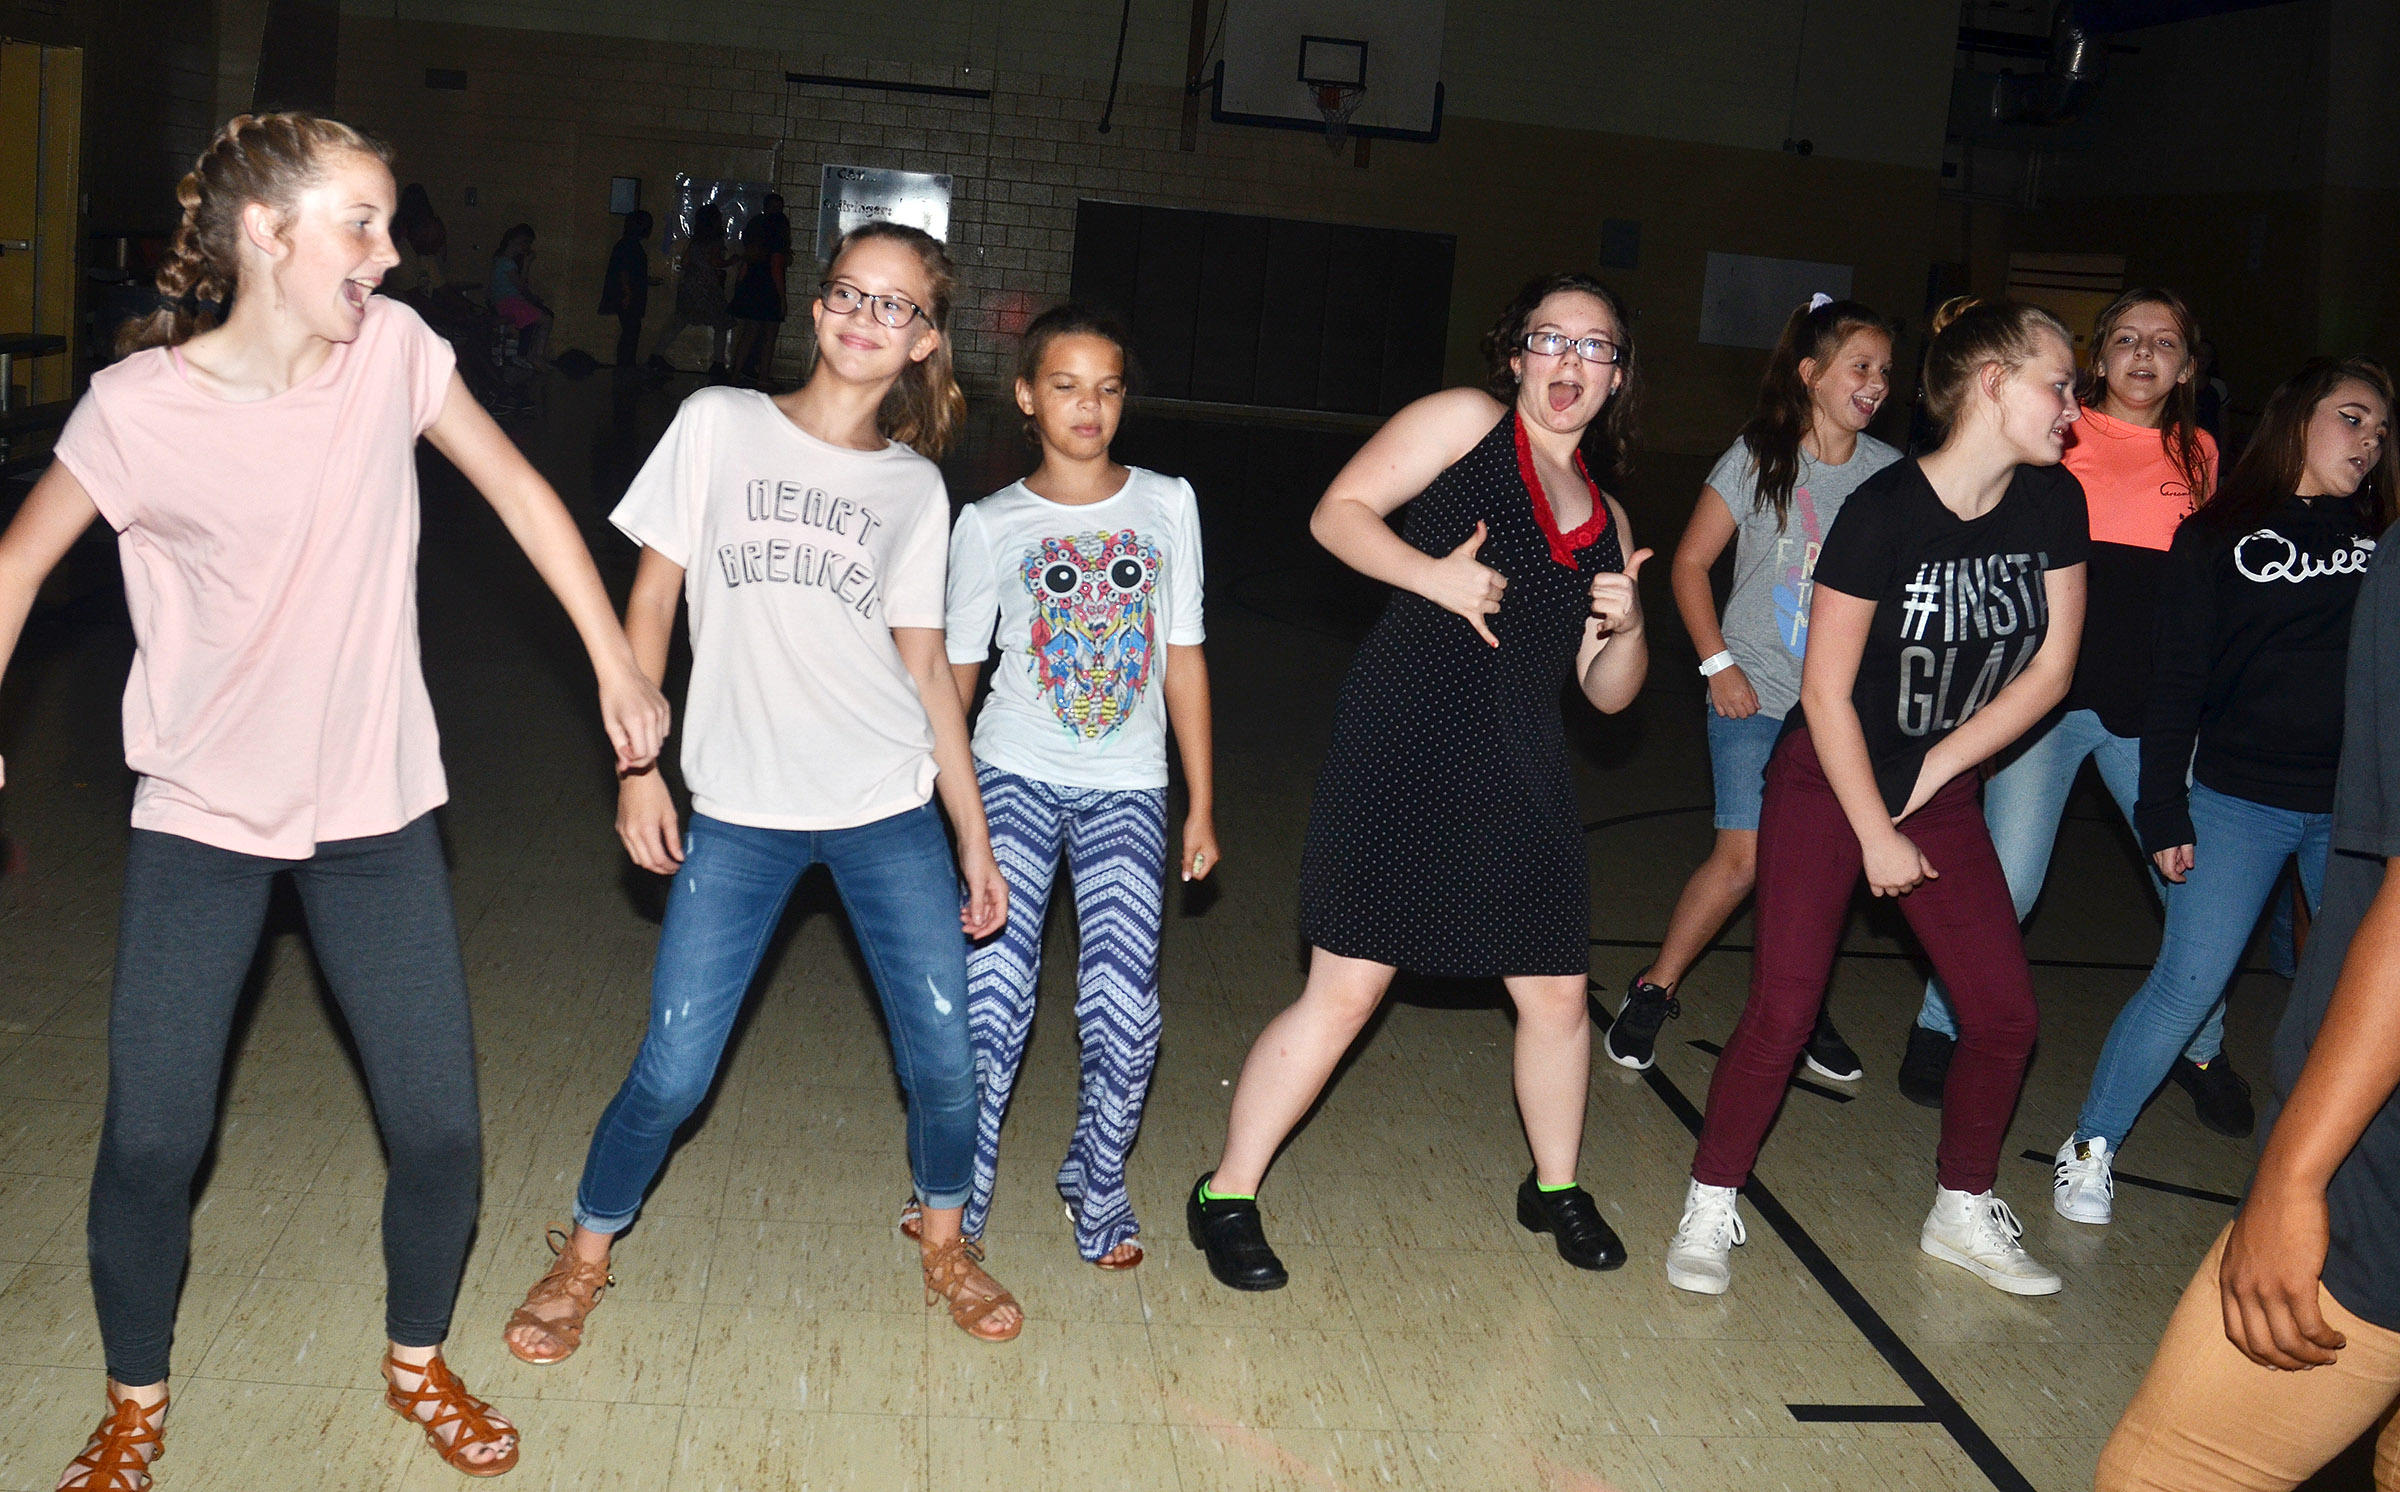 CMS students have fun dancing together.